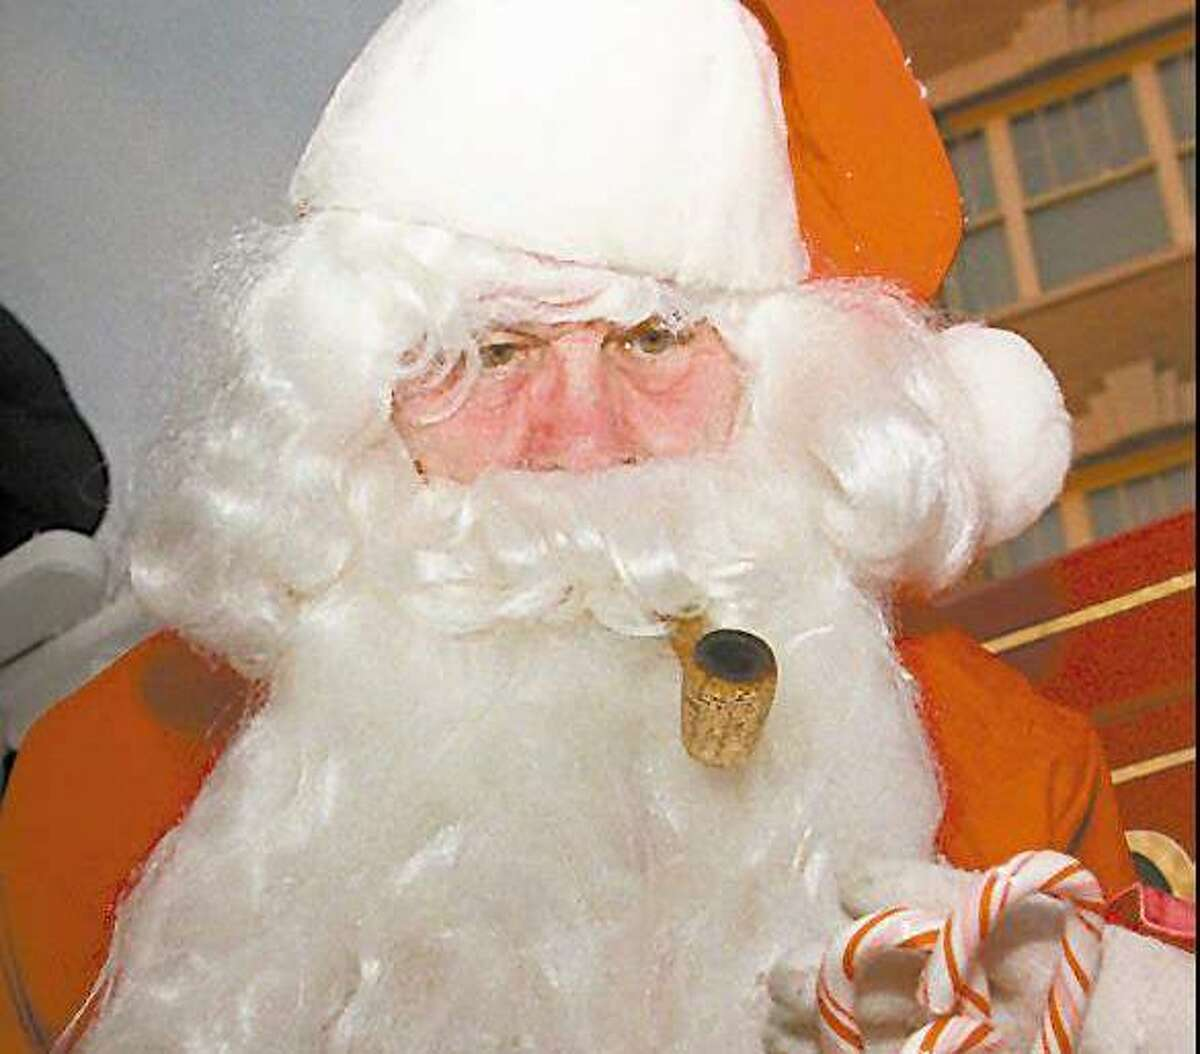 There will be Santa, candy canes and other Christmas festivities at the Parks and Recreation Department's drive-thru holiday celebration on Friday, Dec. 18.